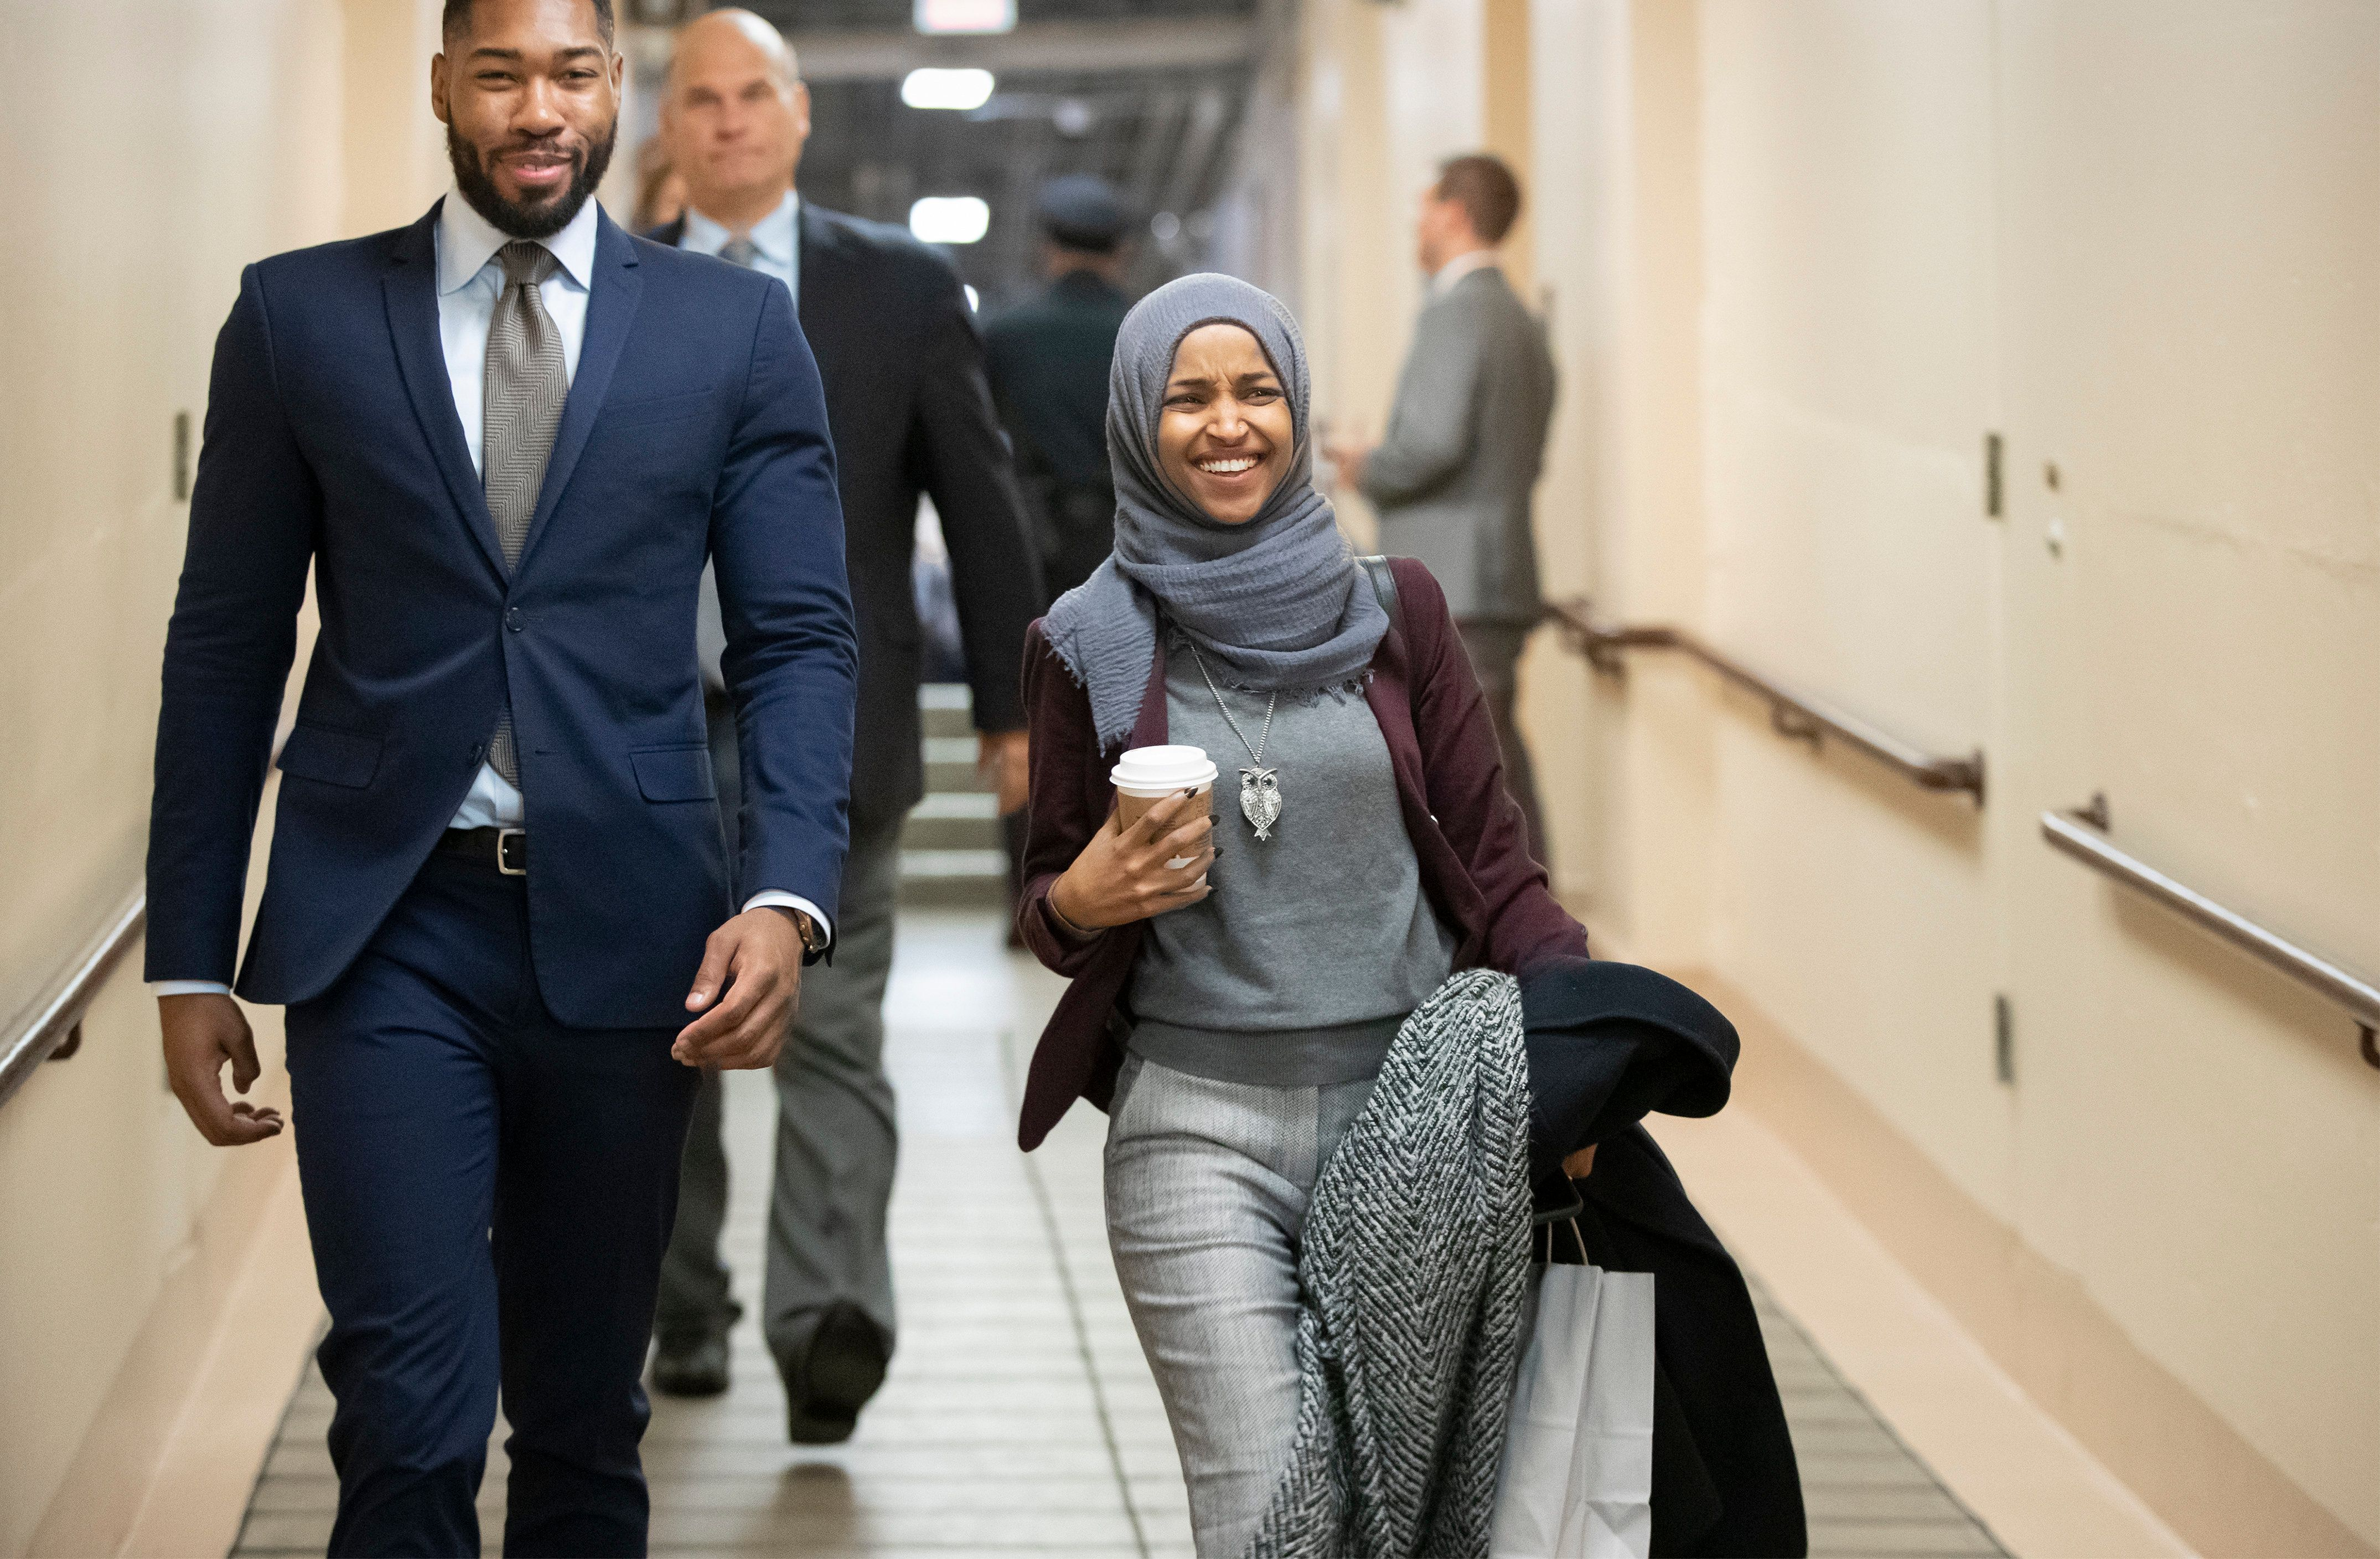 Rep.-elect Ilhan Omar, D-Minn., center, heads to a Democratic Caucus meeting in the basement of the Capitol as new members of the House and veteran representatives gathered behind closed doors to discuss their agenda when they become the majority in the 116th Congress, in Washington, Thursday, Nov. 15, 2018. (AP Photo/J. Scott Applewhite)